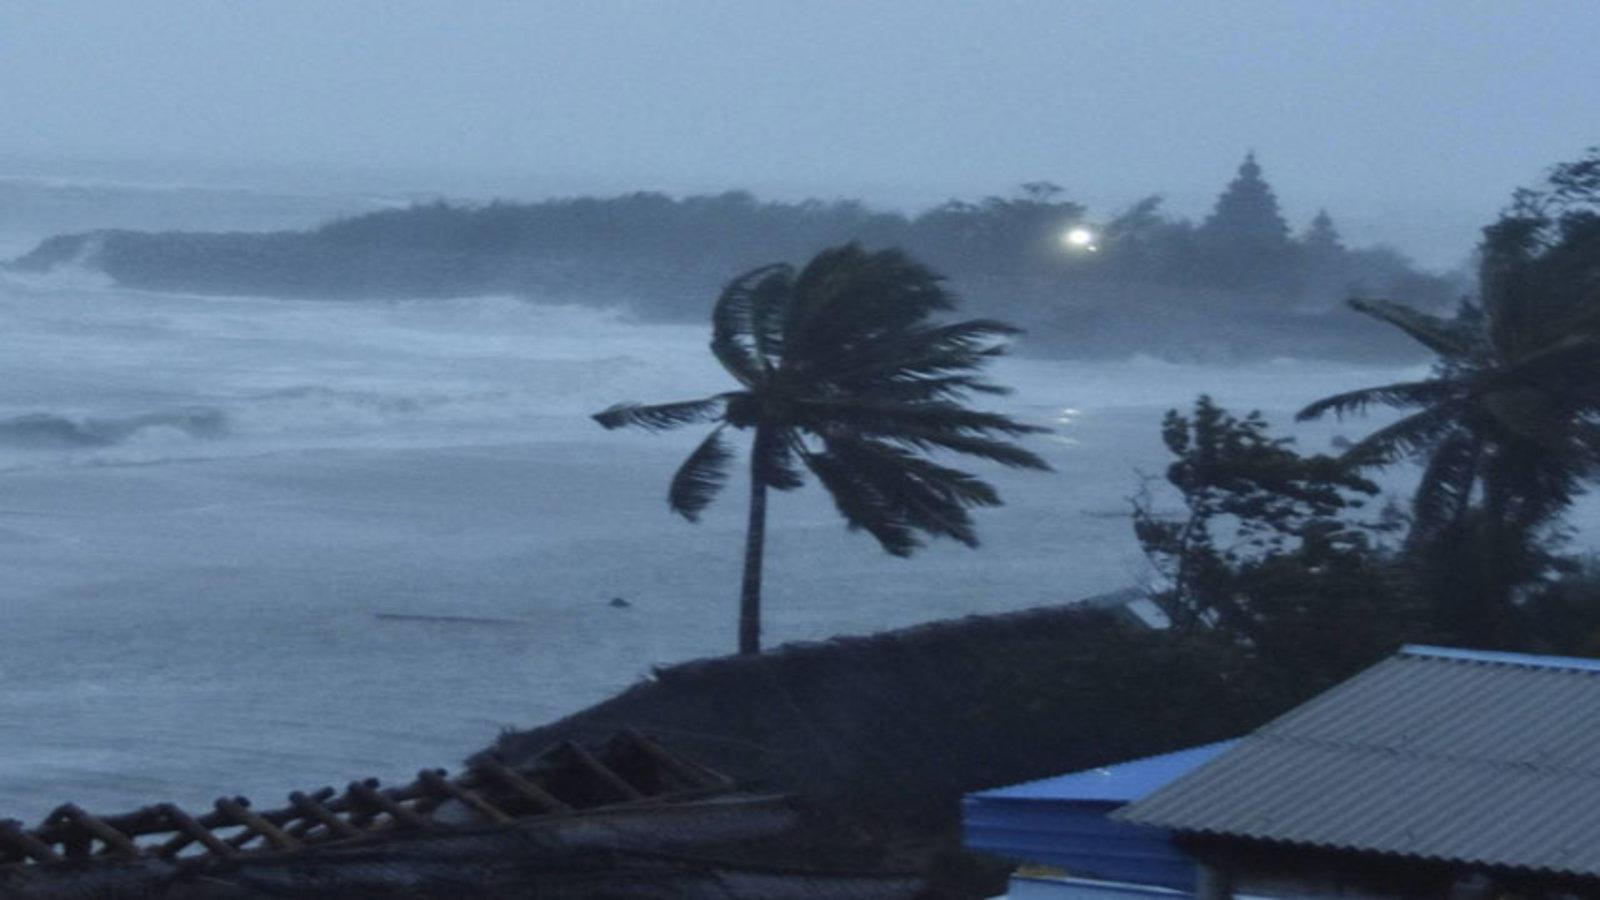 Weatherman warns of more strong winds